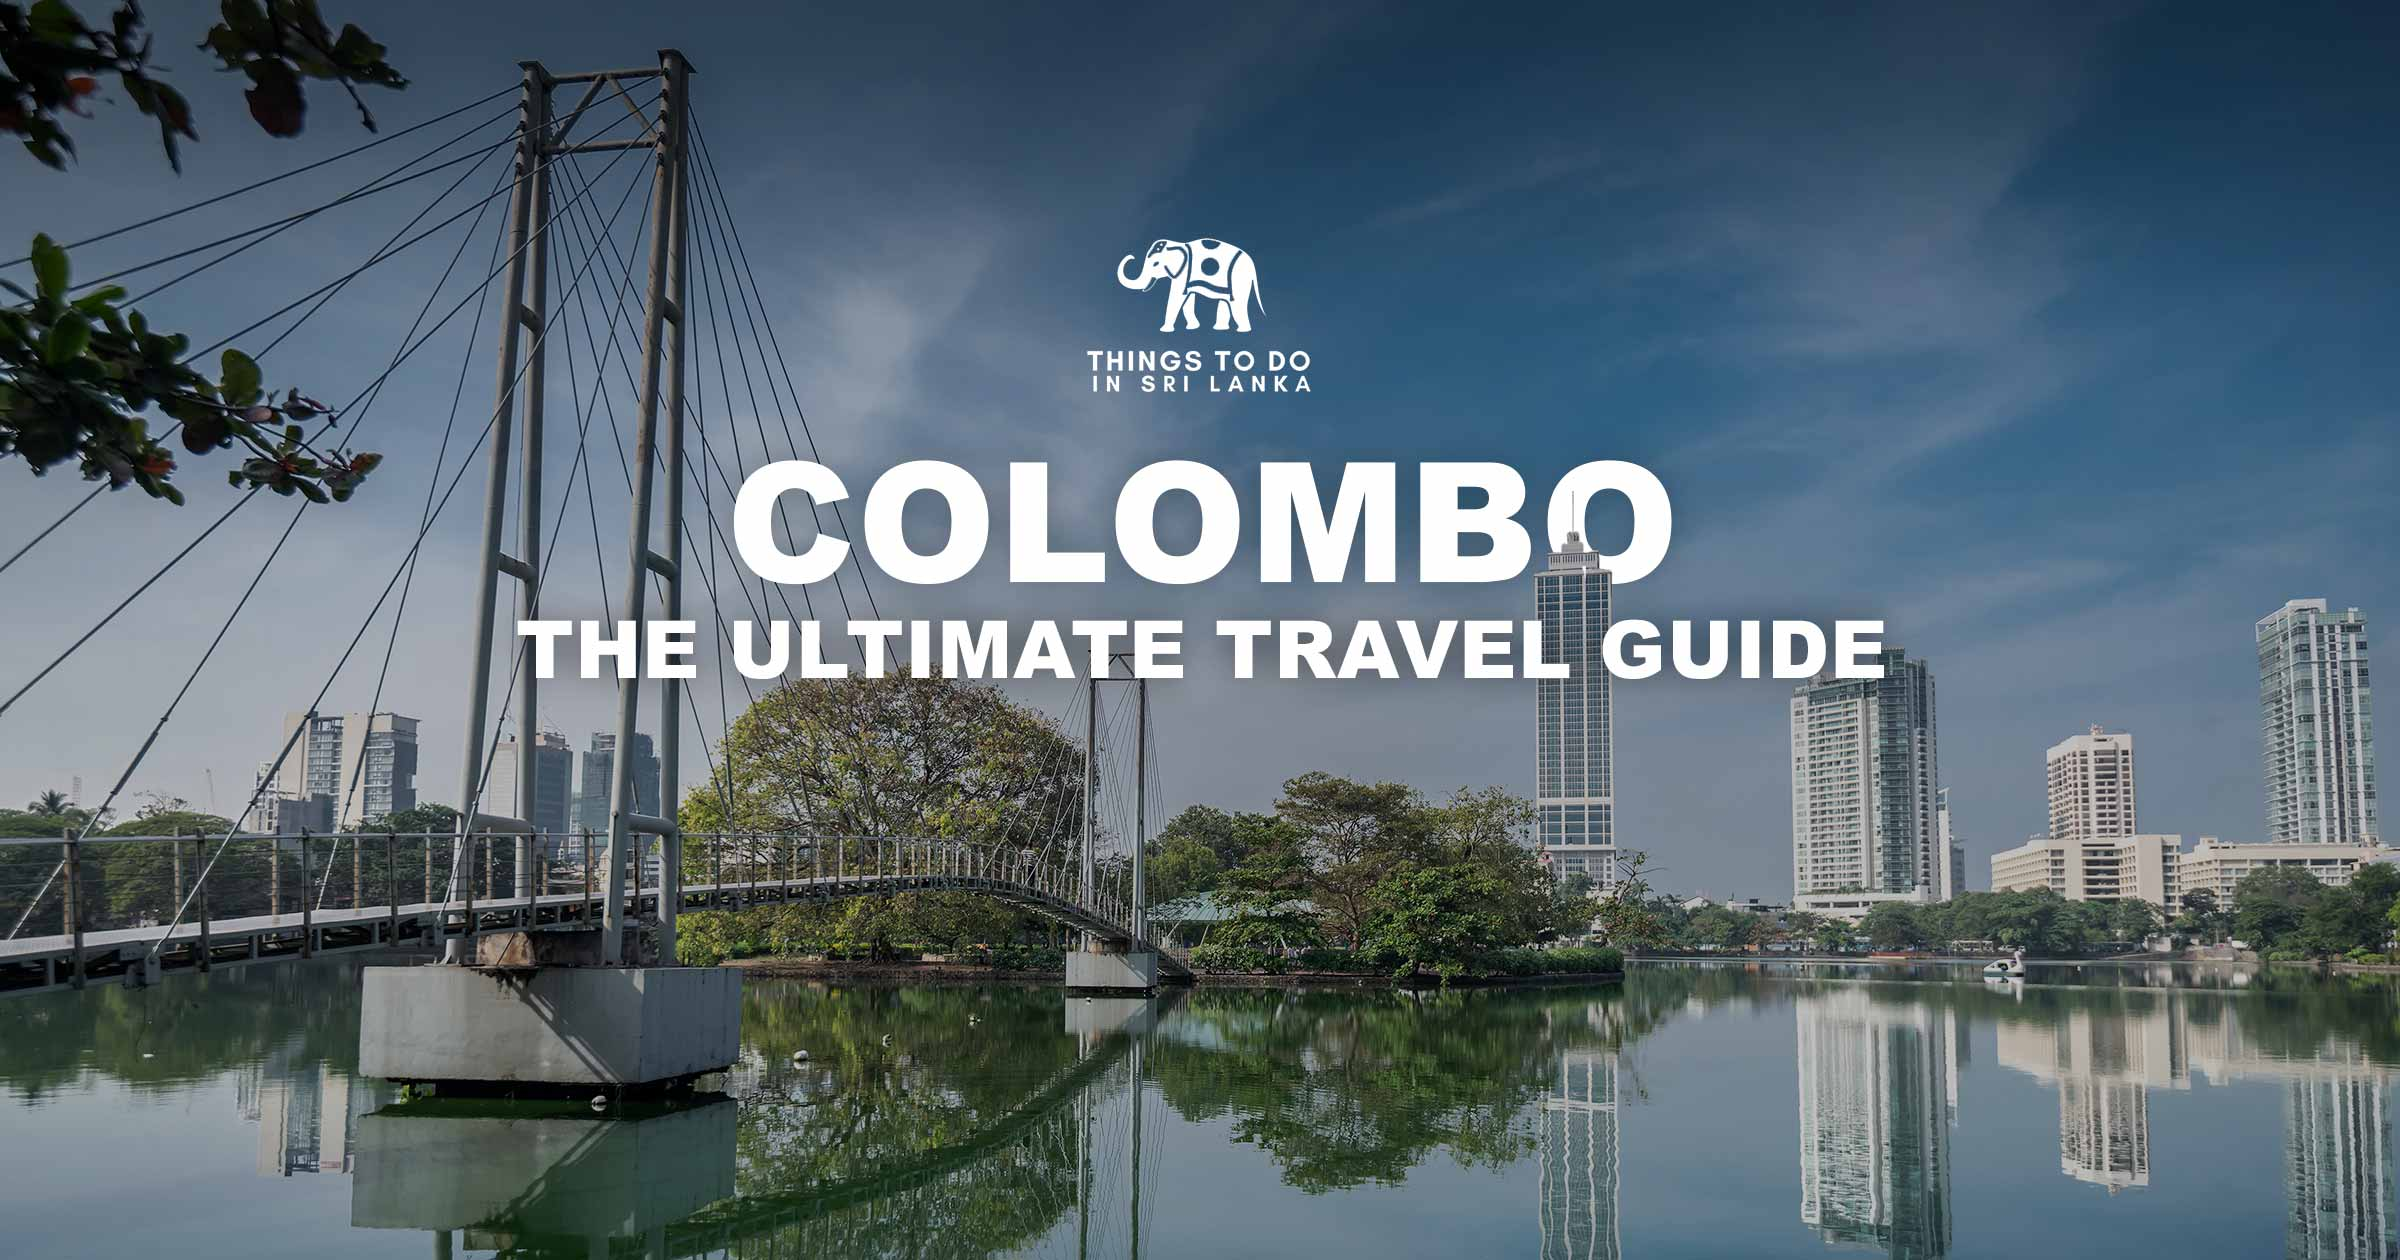 Colombo - The Ultimate Travel Guide